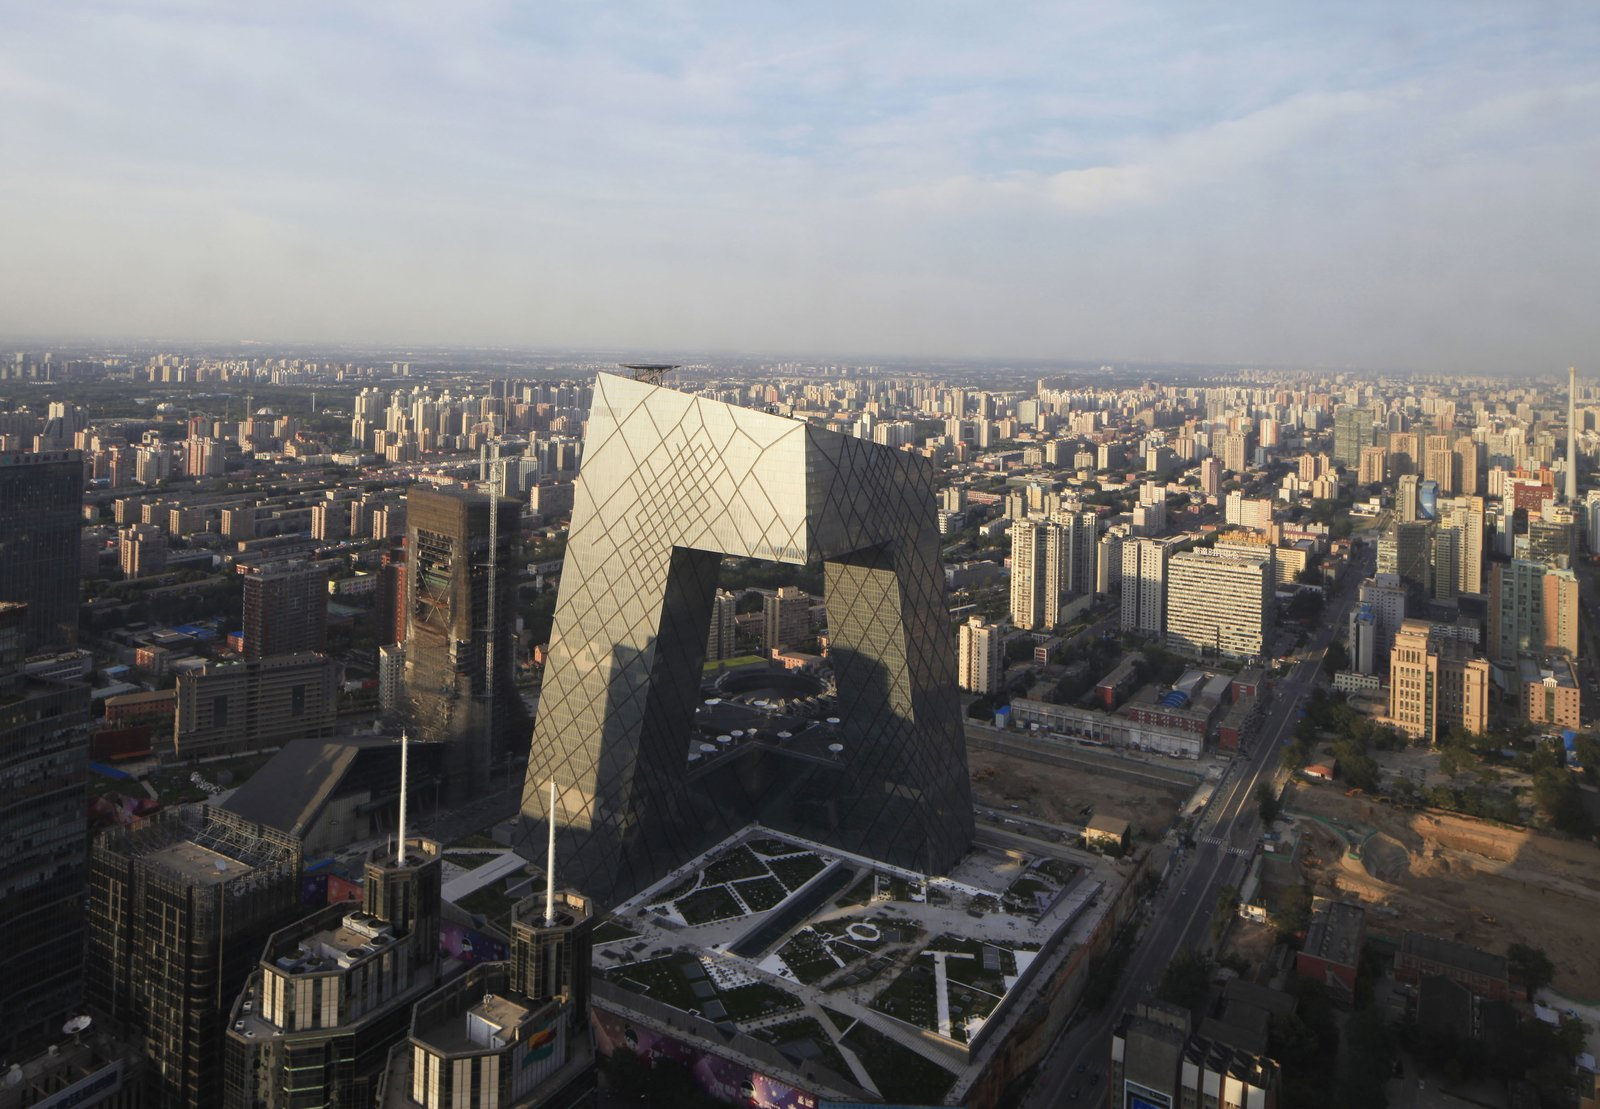 """The CCTV building, the headquarters of China Central Television designed by OMA, in earthquake-prone Beijing. Photo by Iwan Baan.  Photo 1 of 6 in """"Quake"""" Exhibit Explores Intersection of Architecture and Engineering"""